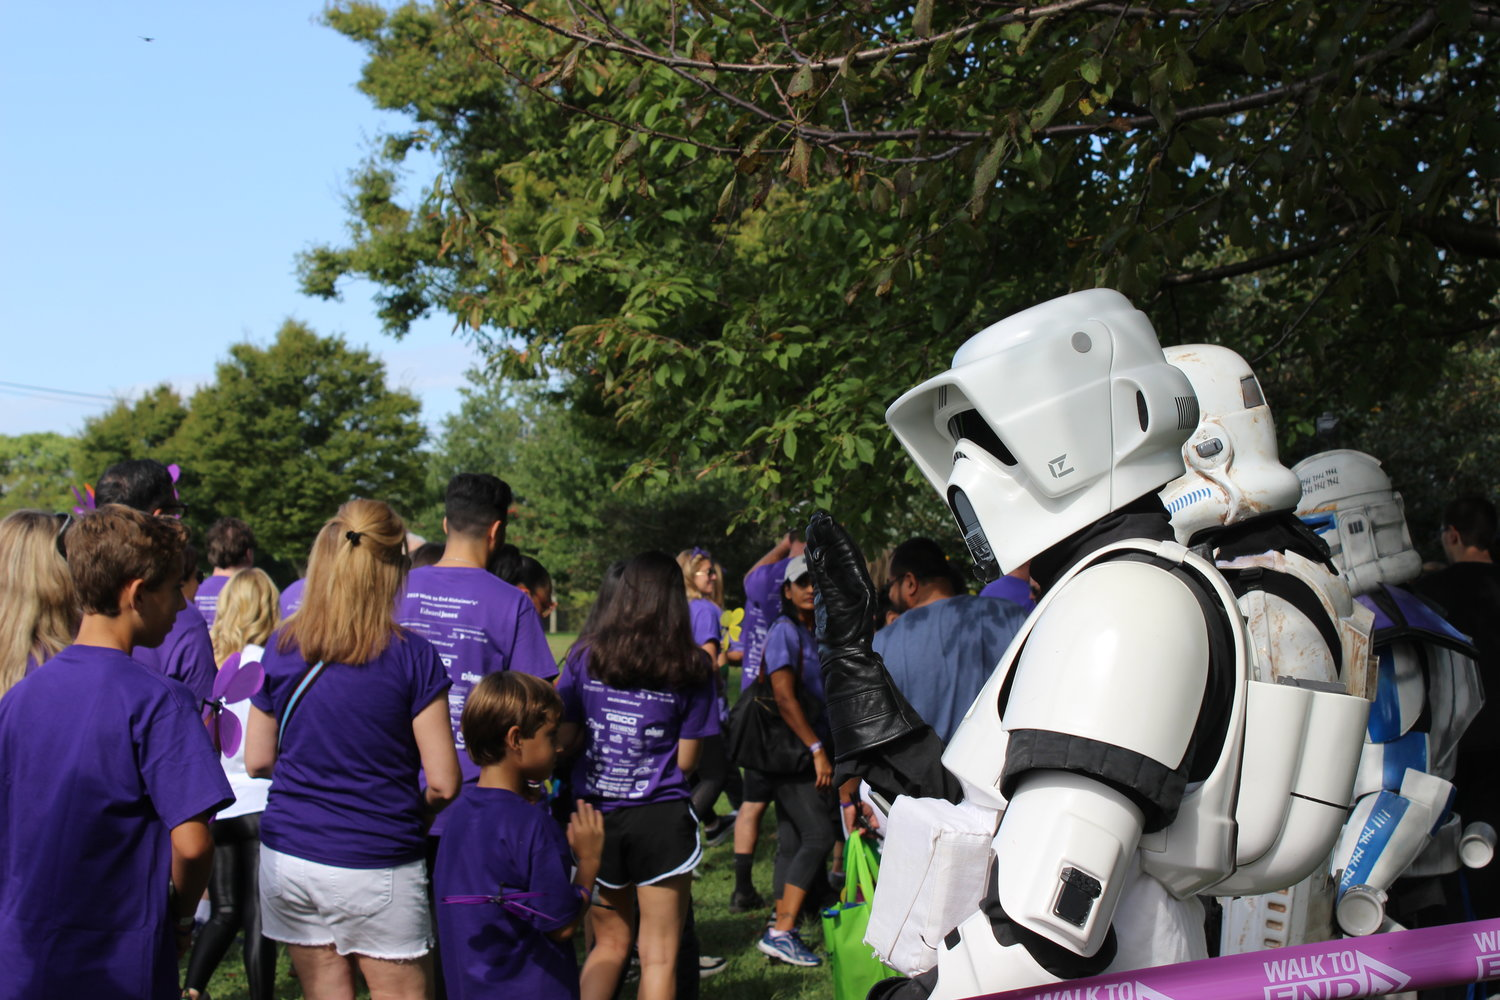 Mascots from the film franchise Star Wars greeted participants as they embarked on the 2.5-mile walk.